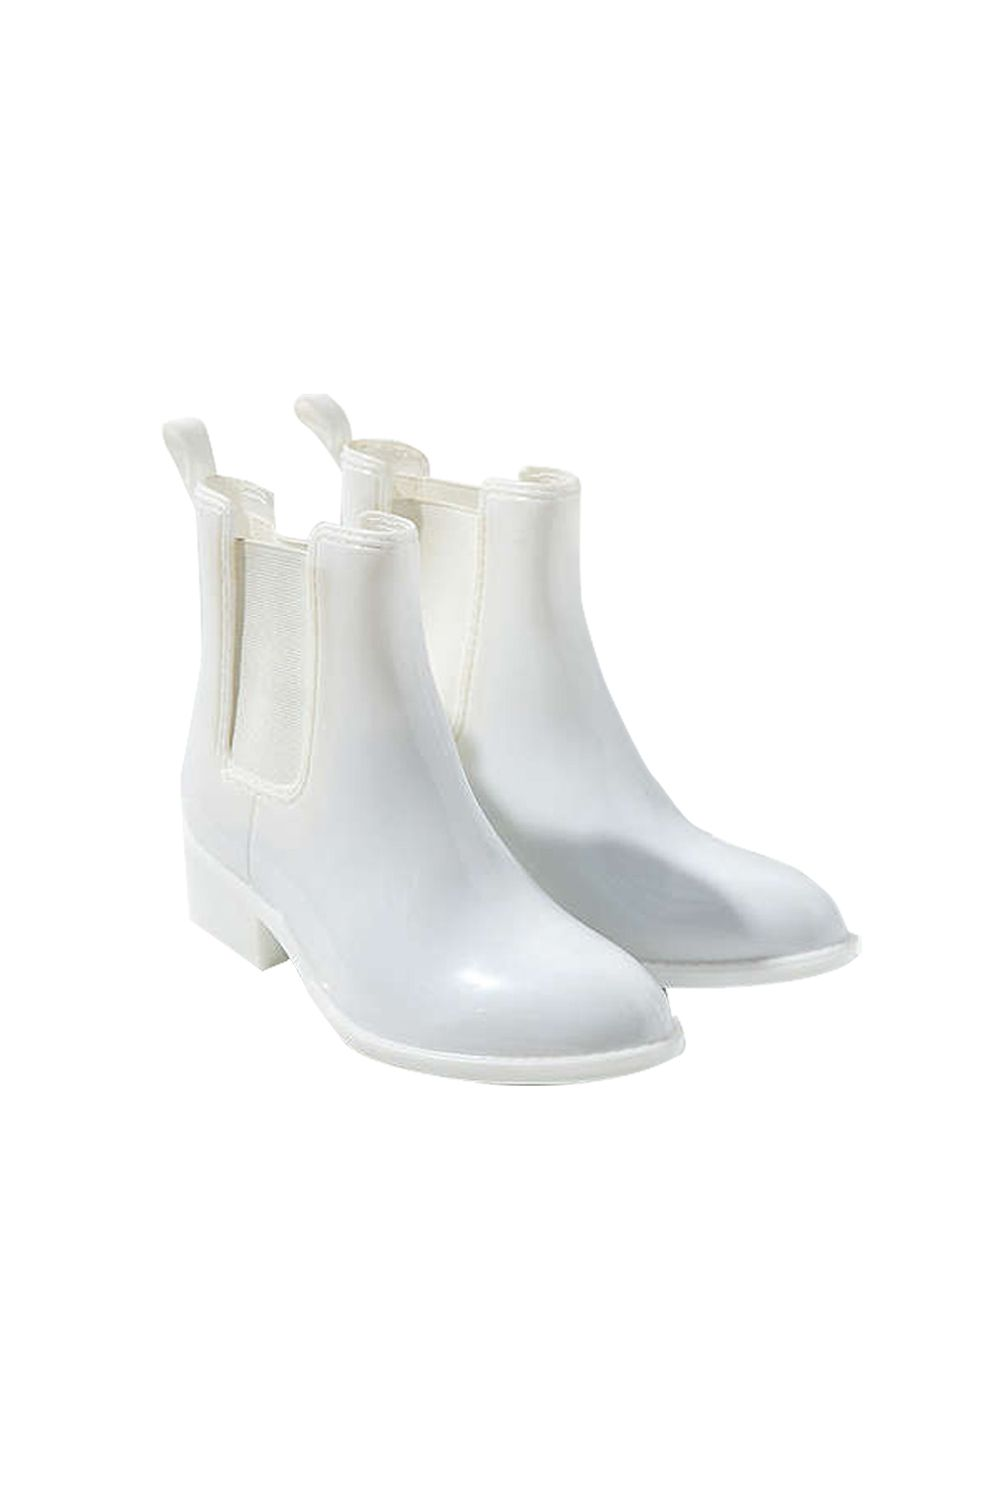 "<p>And a white boot you can get really muddy at a festival this summer.&nbsp&#x3B;</p><p><em data-redactor-tag=""em"" data-verified=""redactor"">Jeffrey Campbell, $55</em><span class=""redactor-invisible-space"" data-verified=""redactor"" data-redactor-tag=""span"" data-redactor-class=""redactor-invisible-space""><em data-redactor-tag=""em"" data-verified=""redactor""></em></span><br></p><p><strong data-redactor-tag=""strong"" data-verified=""redactor"">BUY IT:&nbsp&#x3B;<a href=""https://www.urbanoutfitters.com/shop/jeffrey-campbell-stormy-rain-boot-001?category=boots-for-women&amp&#x3B;color=010"" target=""_blank"">urbanoutfitters.com</a>.</strong></p>"